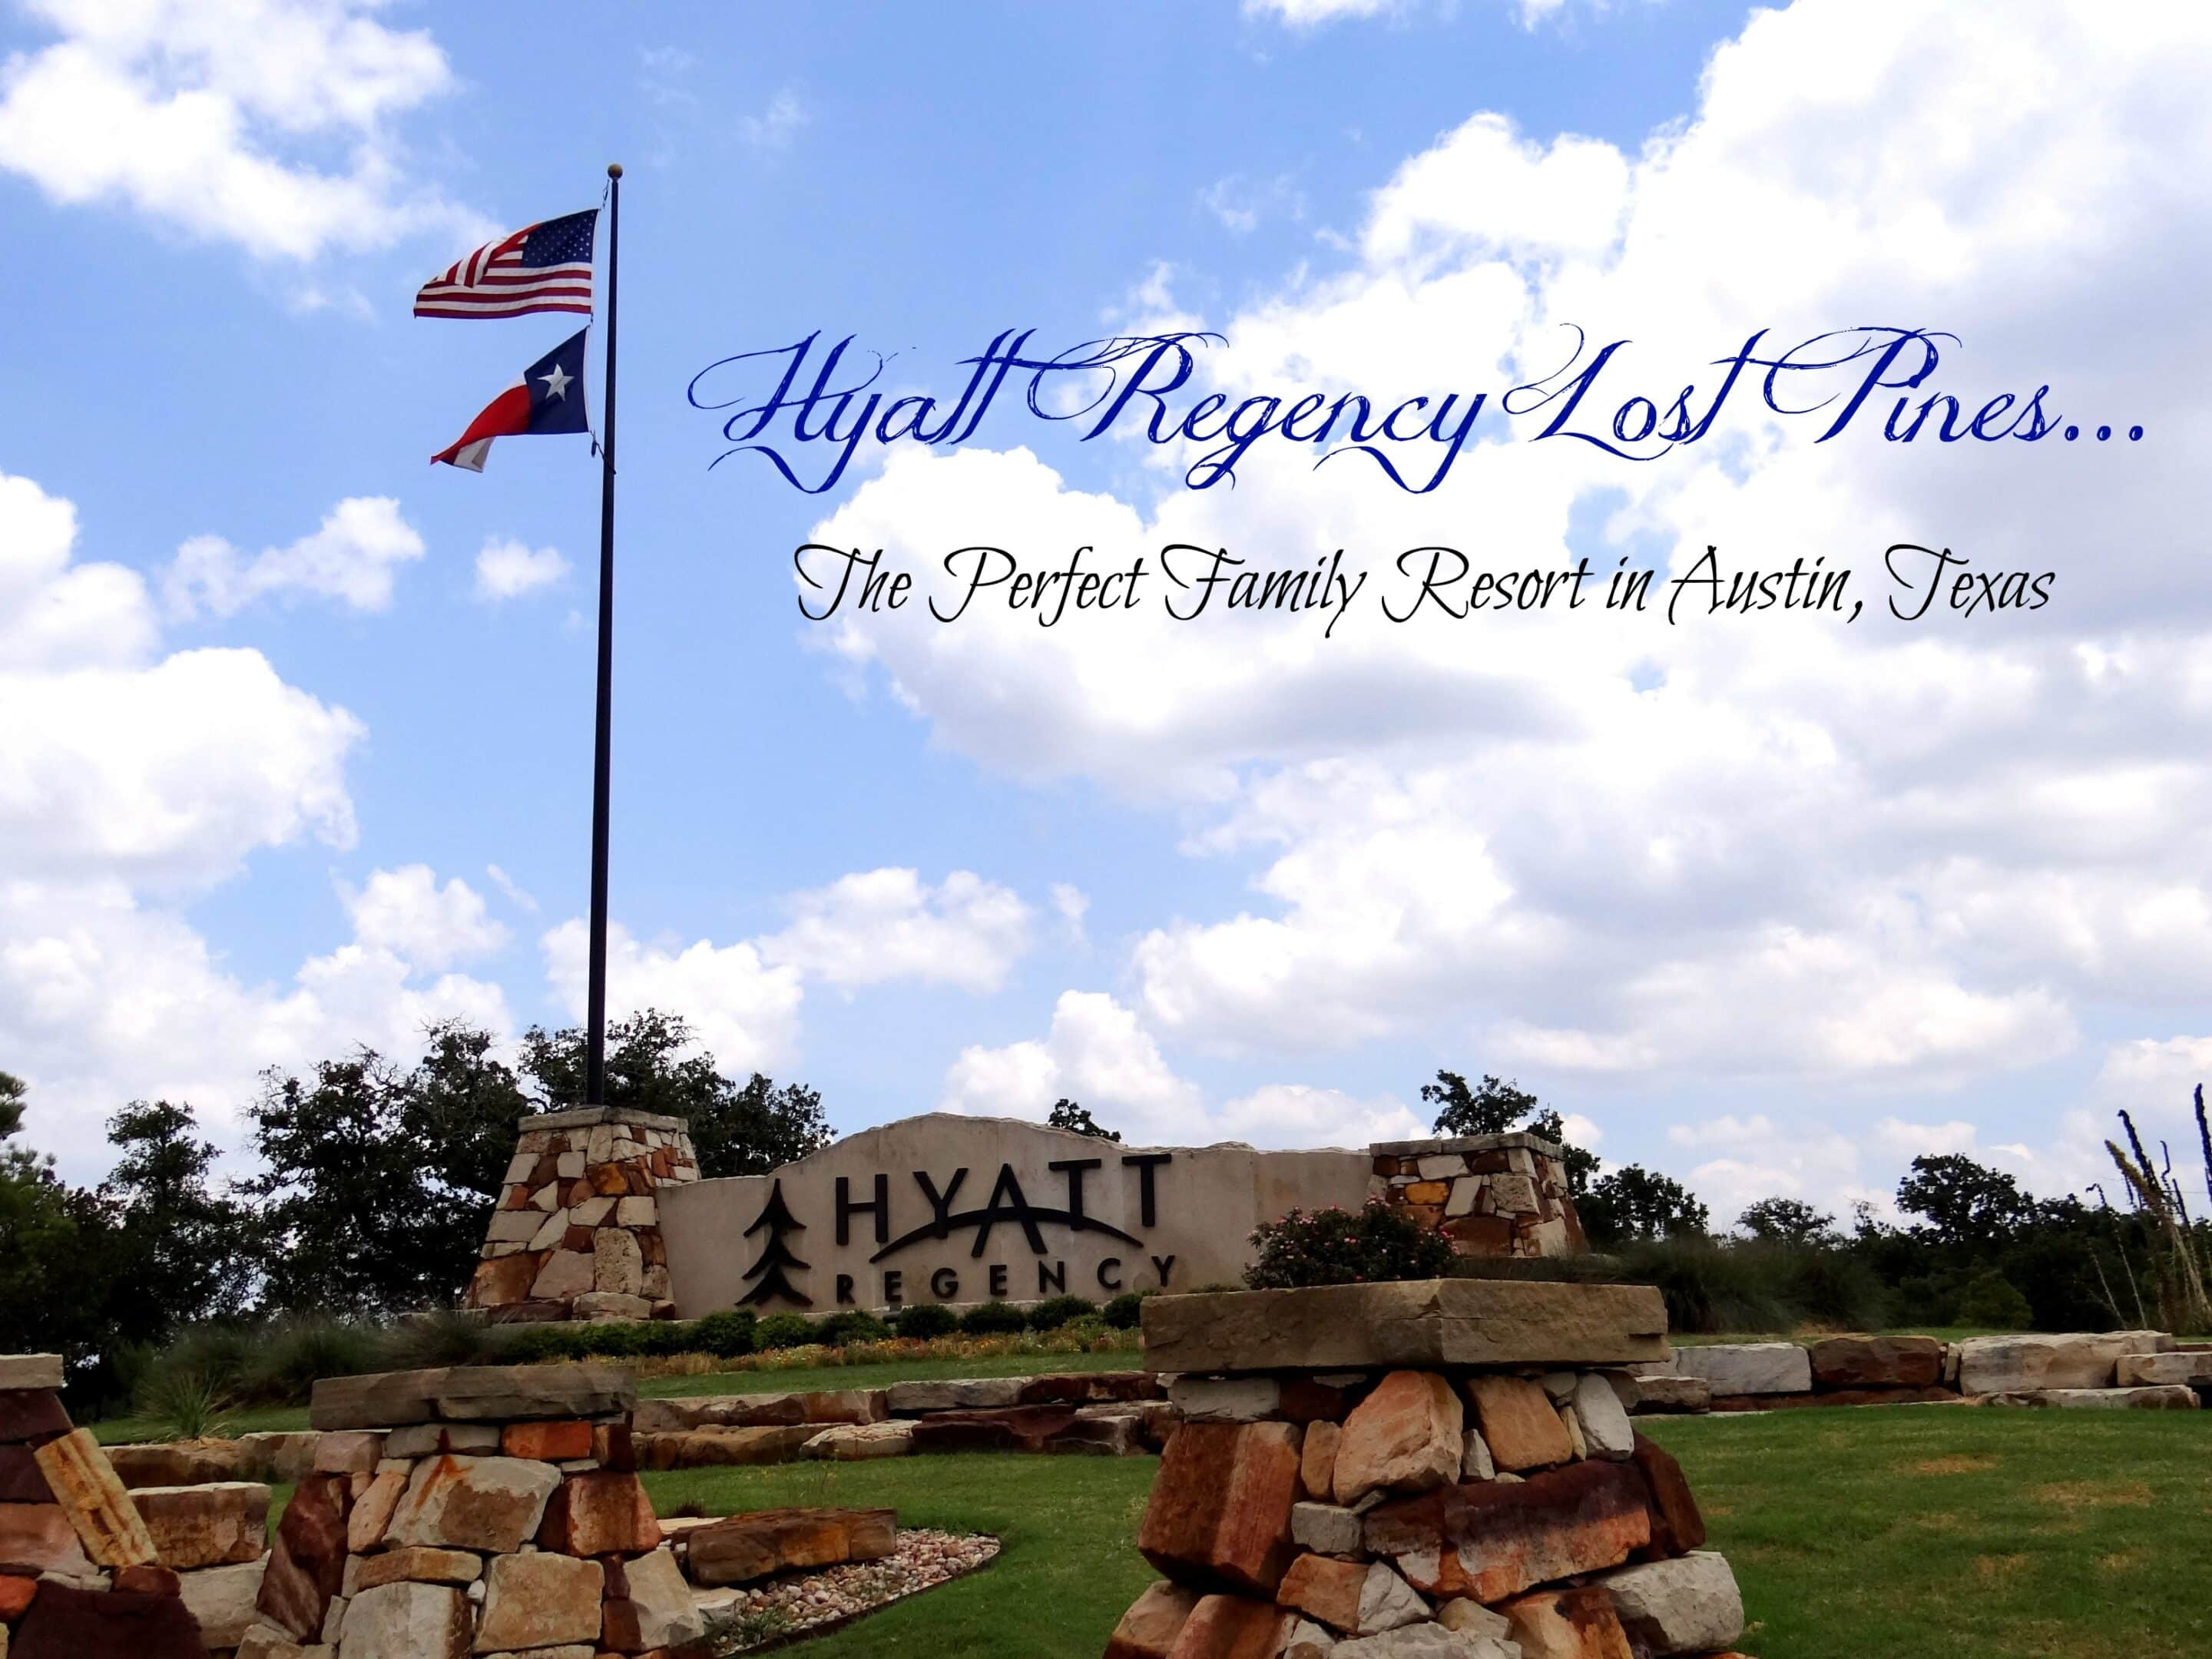 Hyatt Lost Pines...The Perfect Family Resort in Austin, Texas (33)